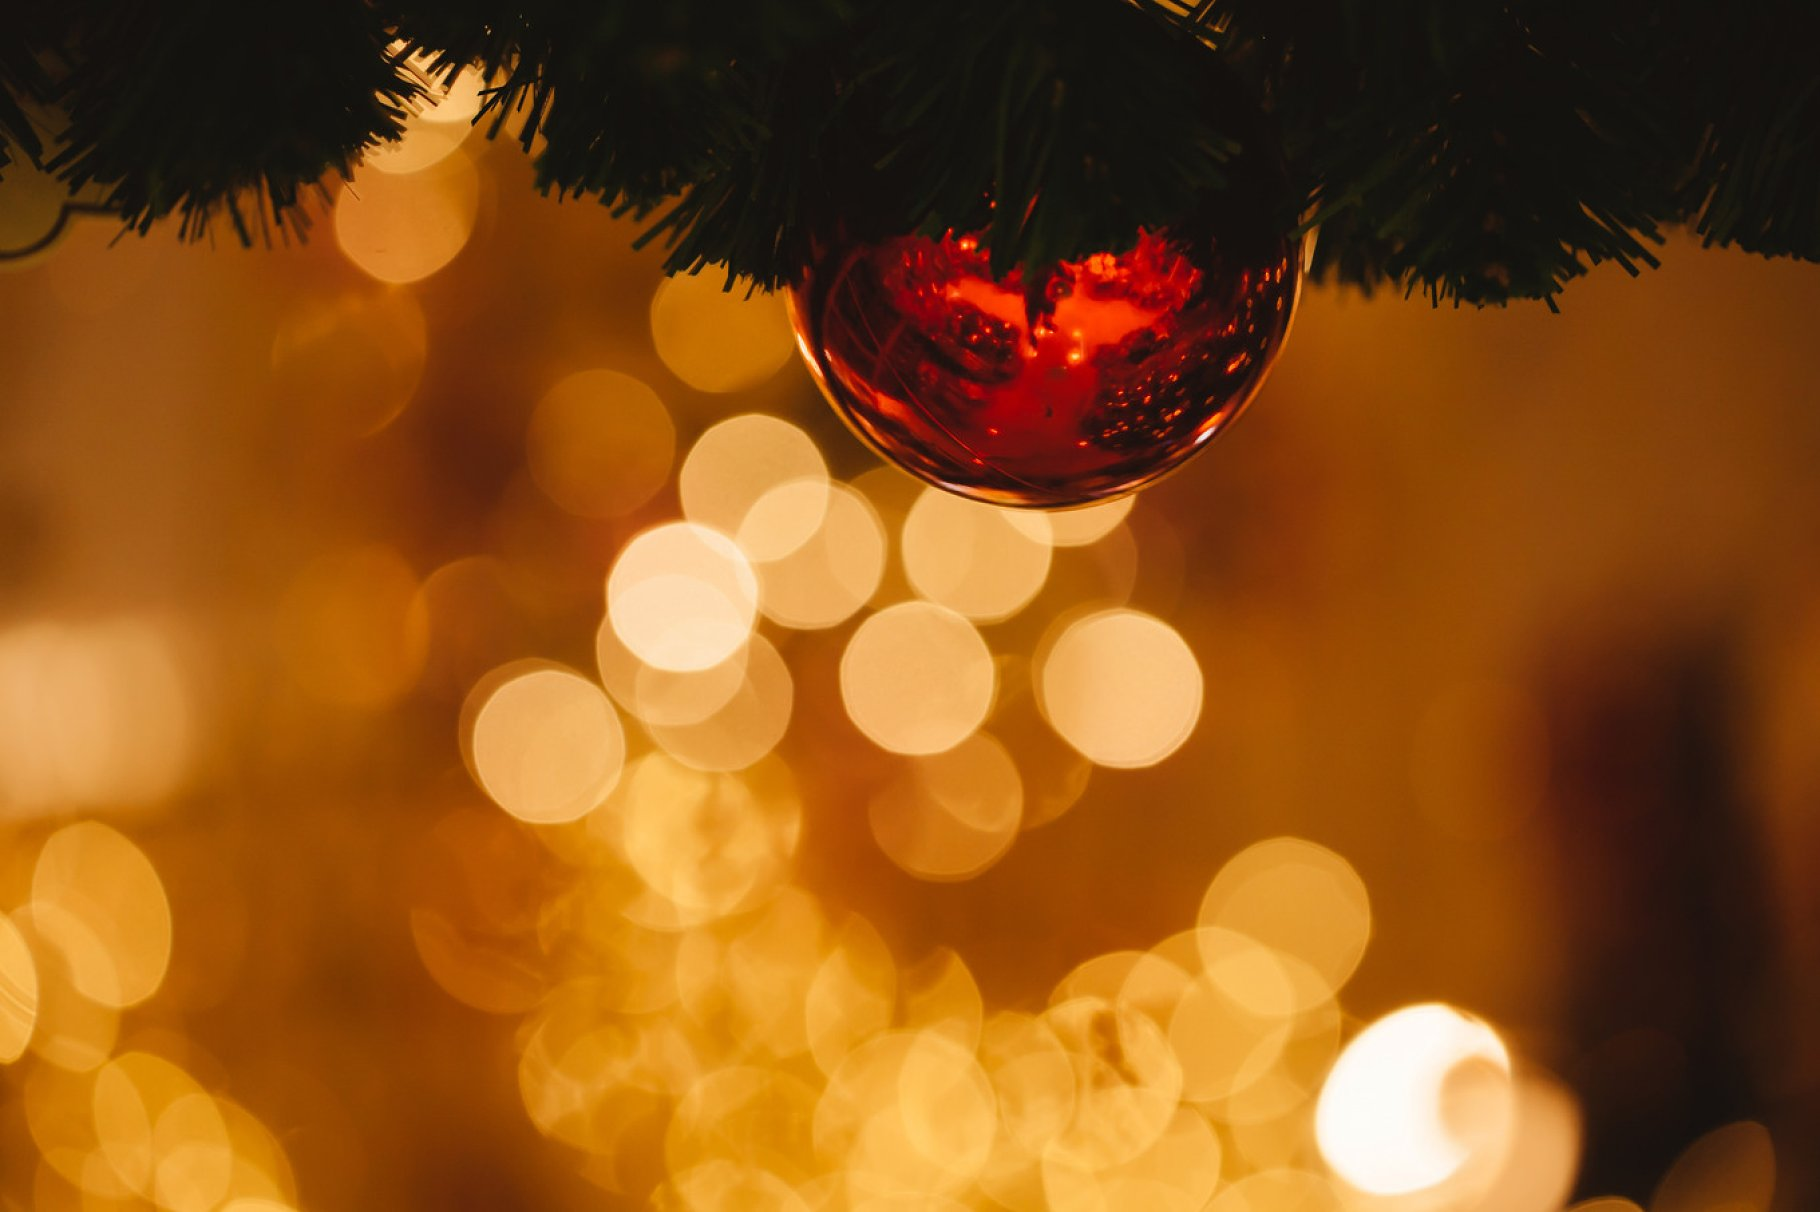 Christmas Ornaments Background.Beautiful Decorated Christmas Tree Background With Bauble And Xmas Ornaments Blurred In Gold Bokeh